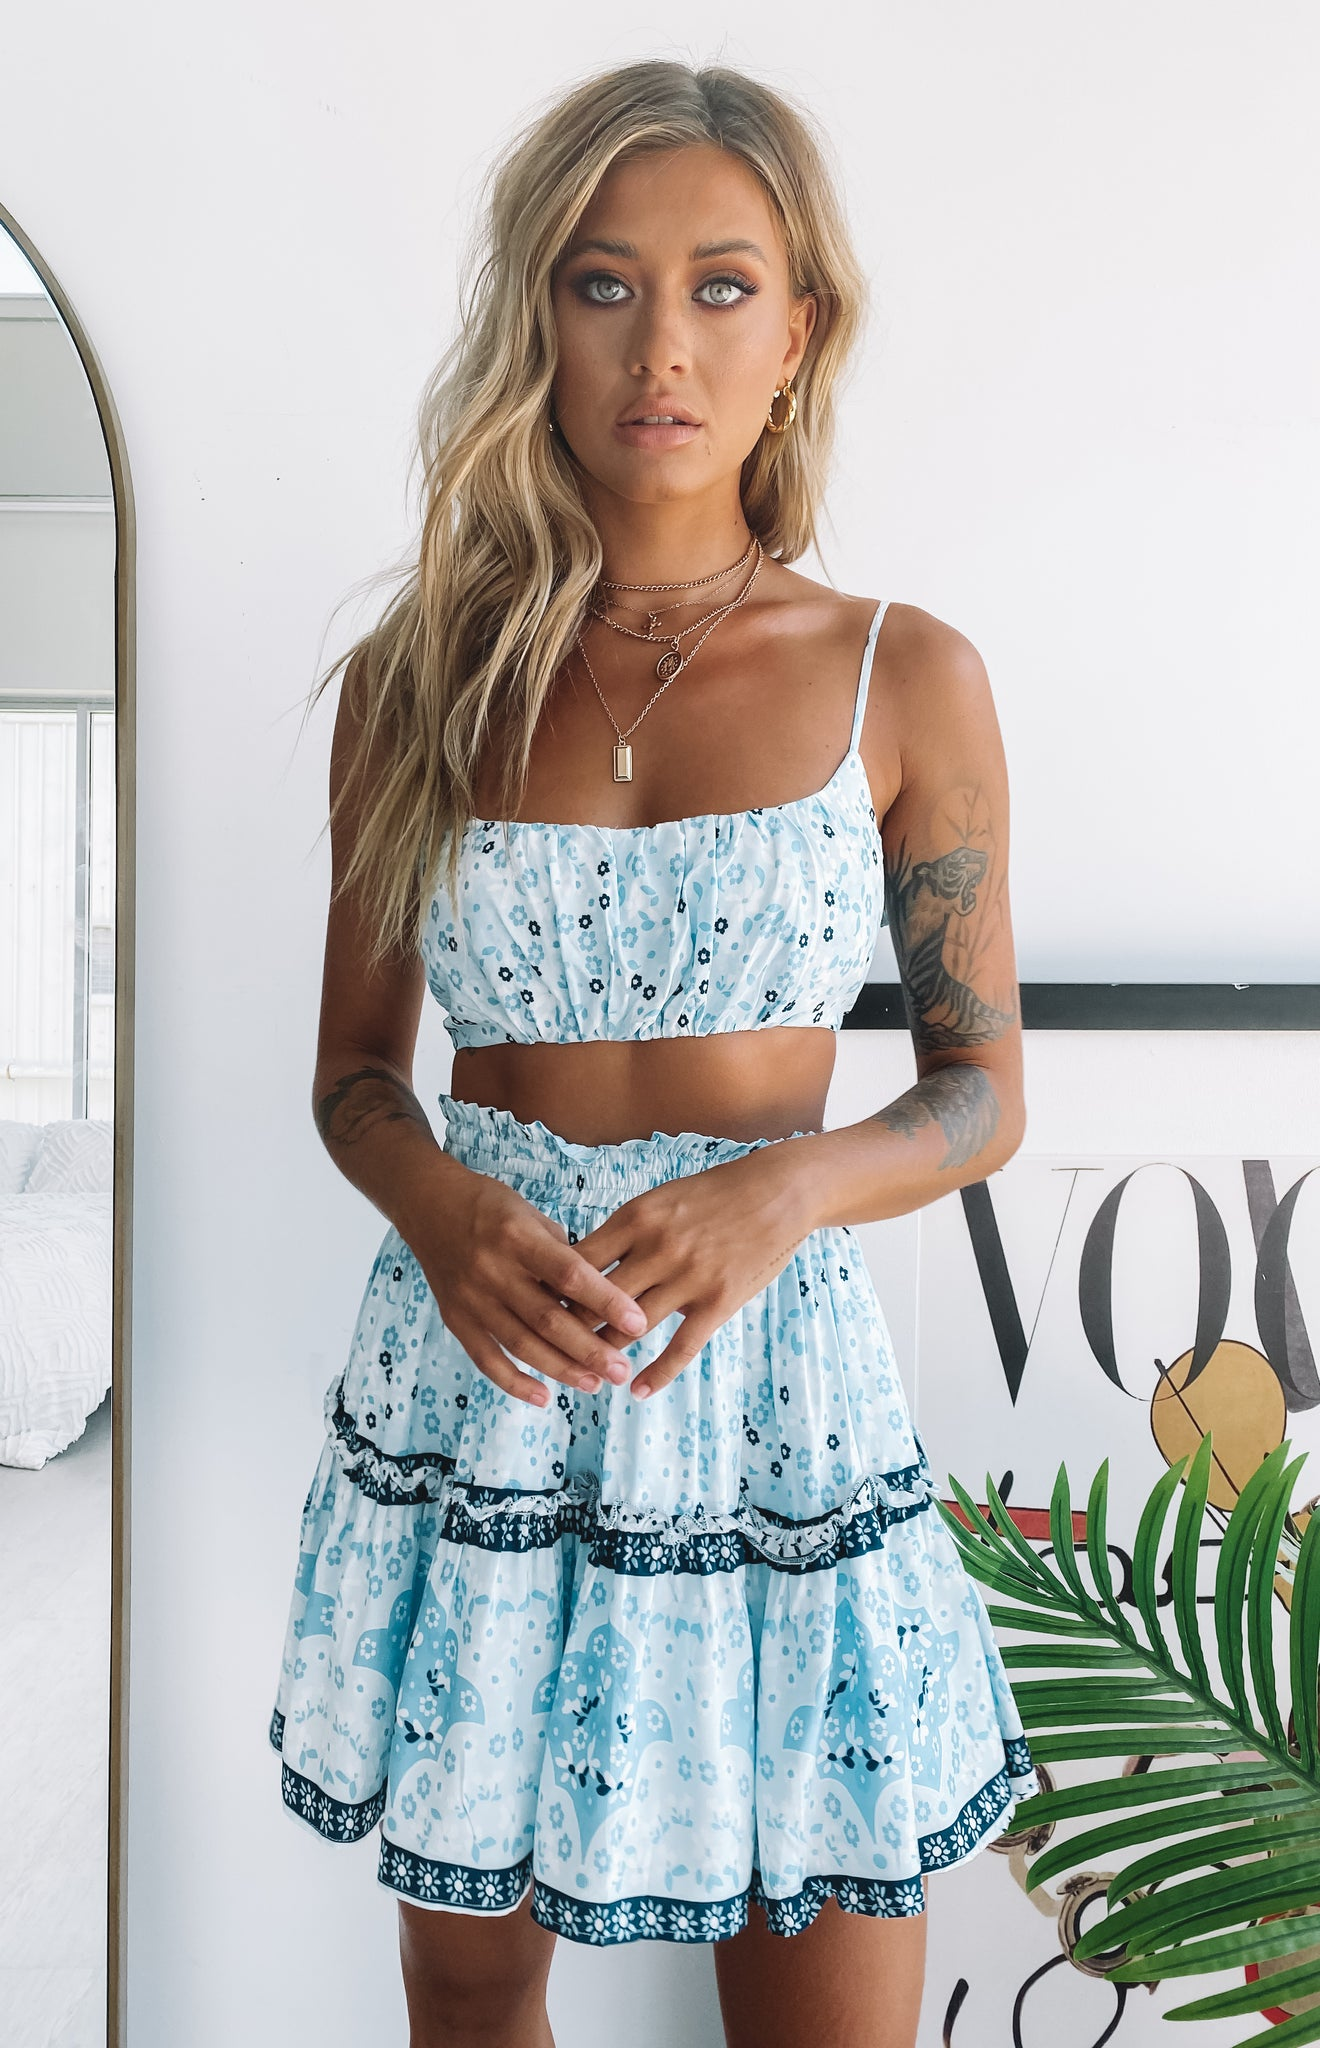 https://files.beginningboutique.com.au/Bird+Of+Paradise+Boho+Crop+Top+Blue+Floral.mp4